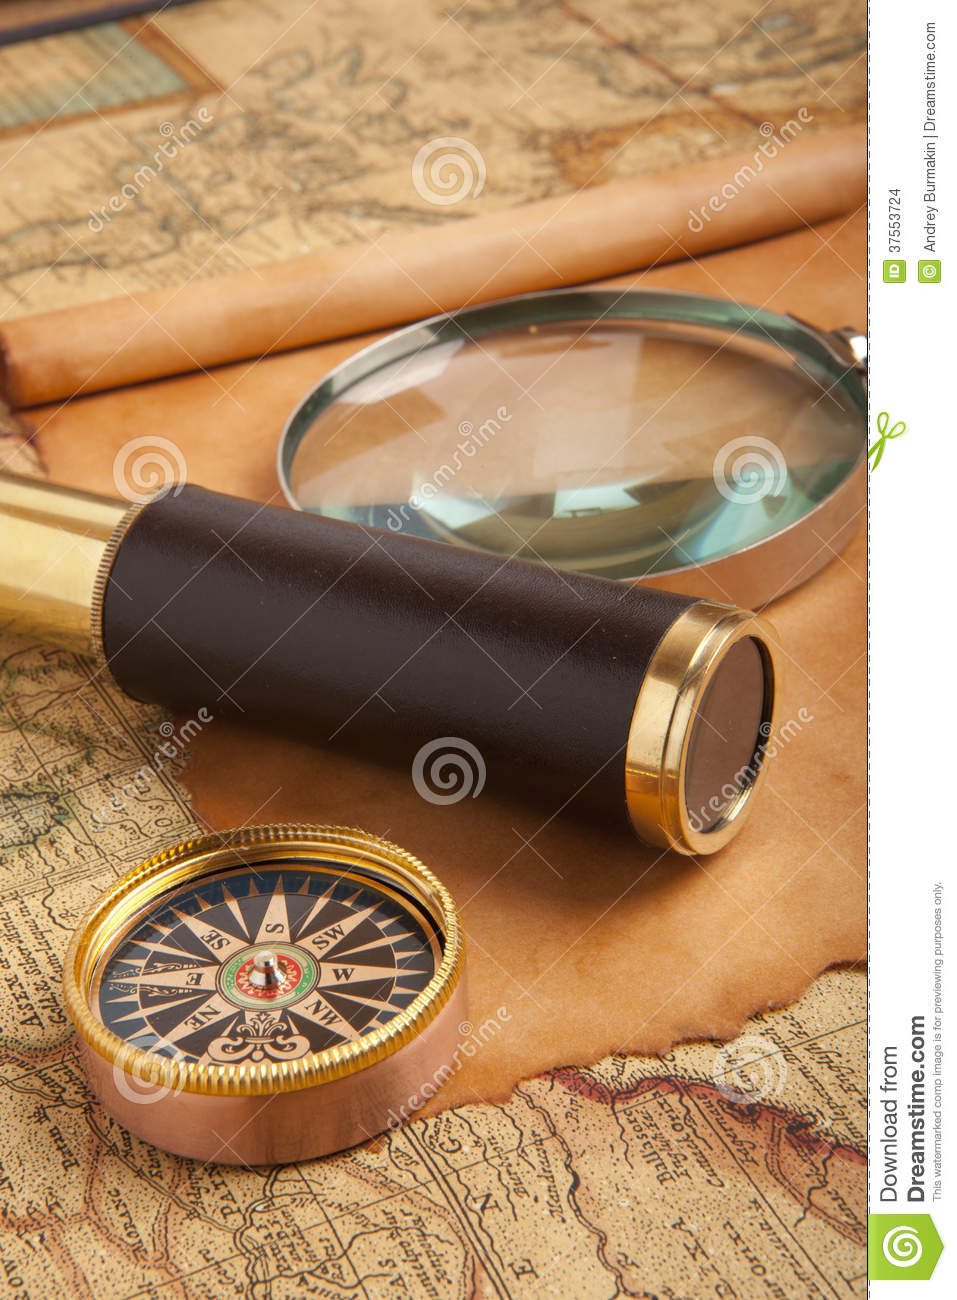 Travel concept stock photo. Image of magnify, brass ...